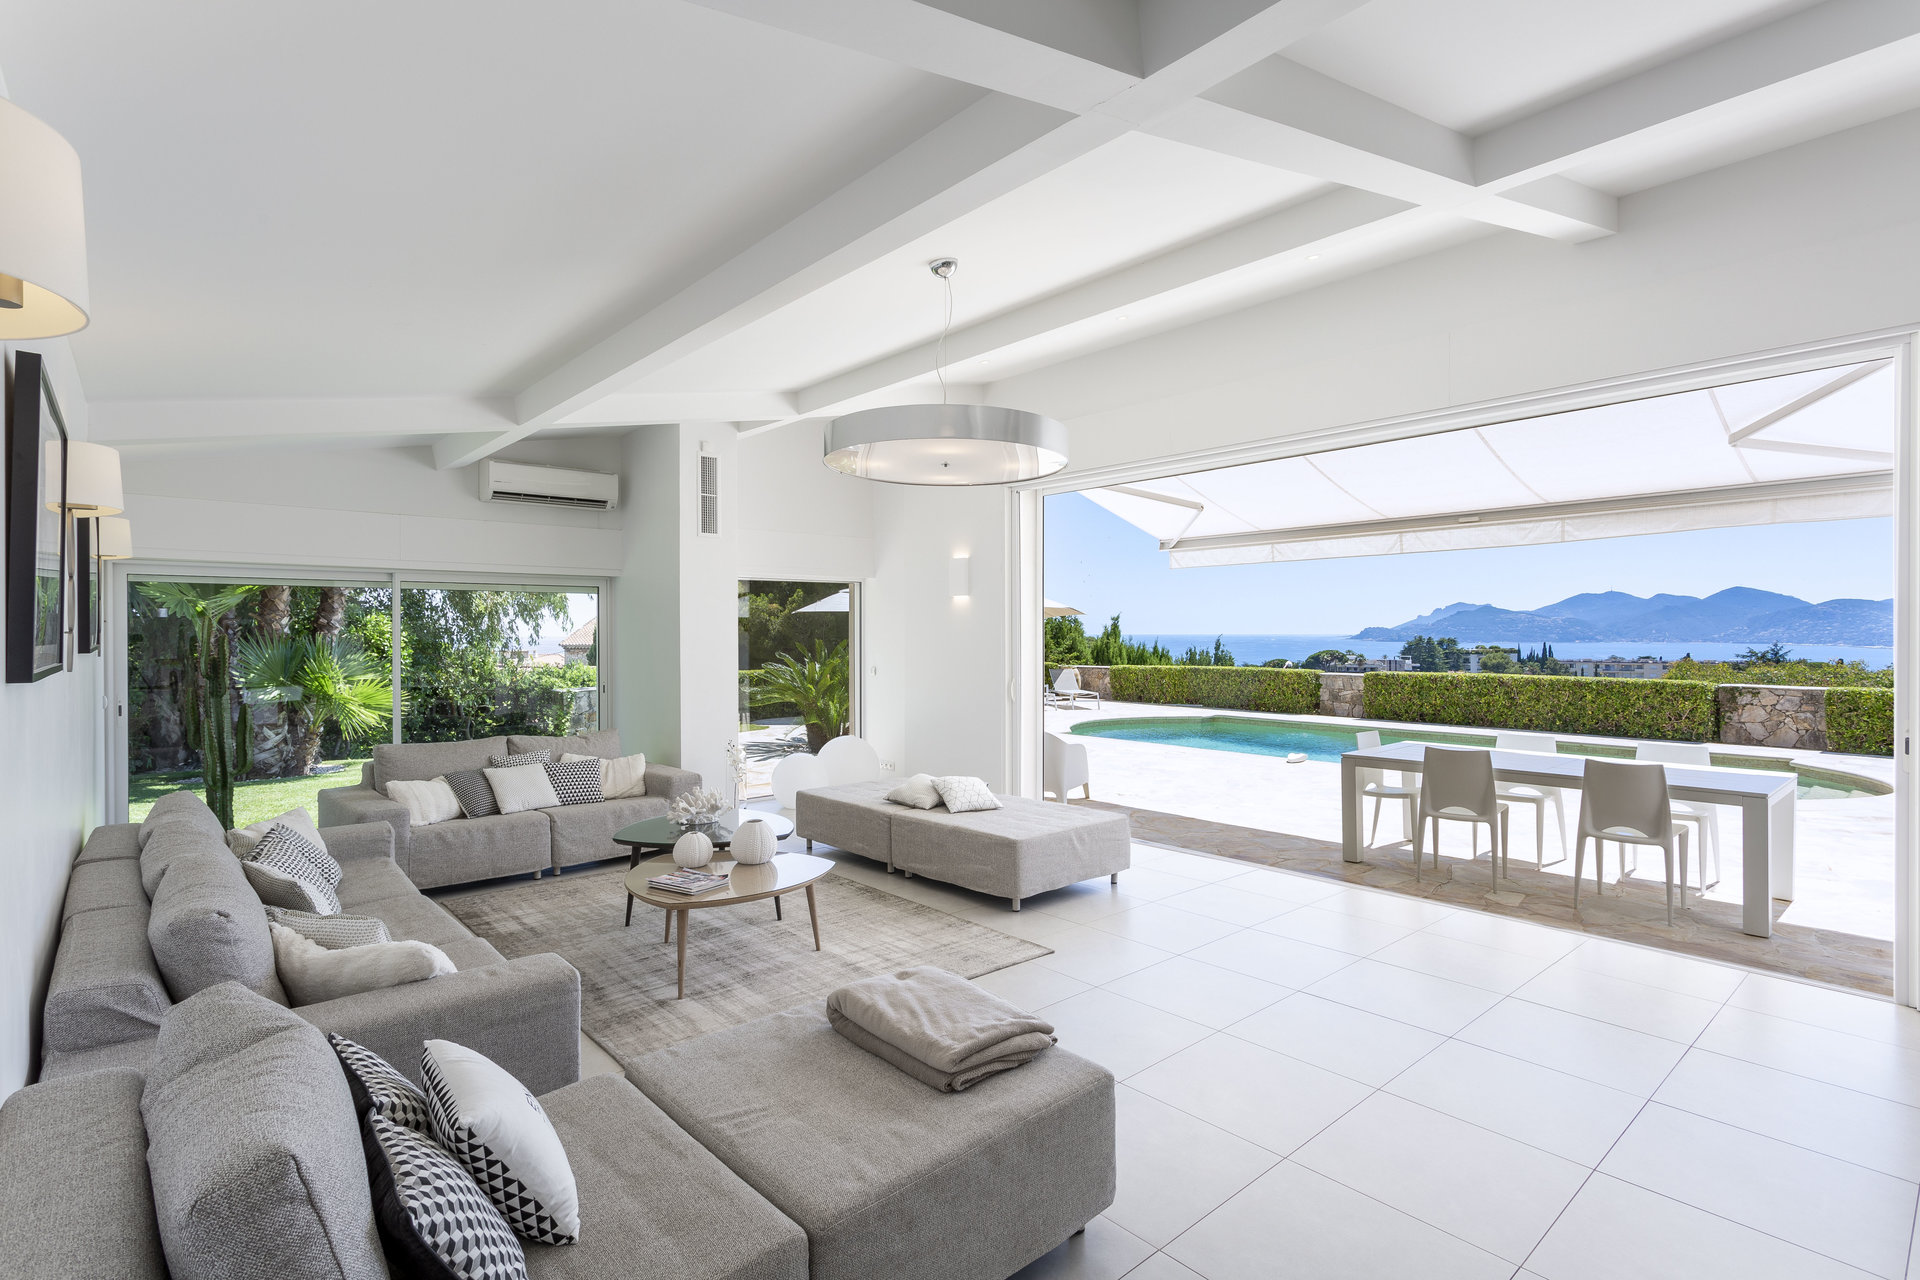 CANNES CROIX DES GARDES – BEAUTIFUL CALIFORNIAN STYLE VILLA